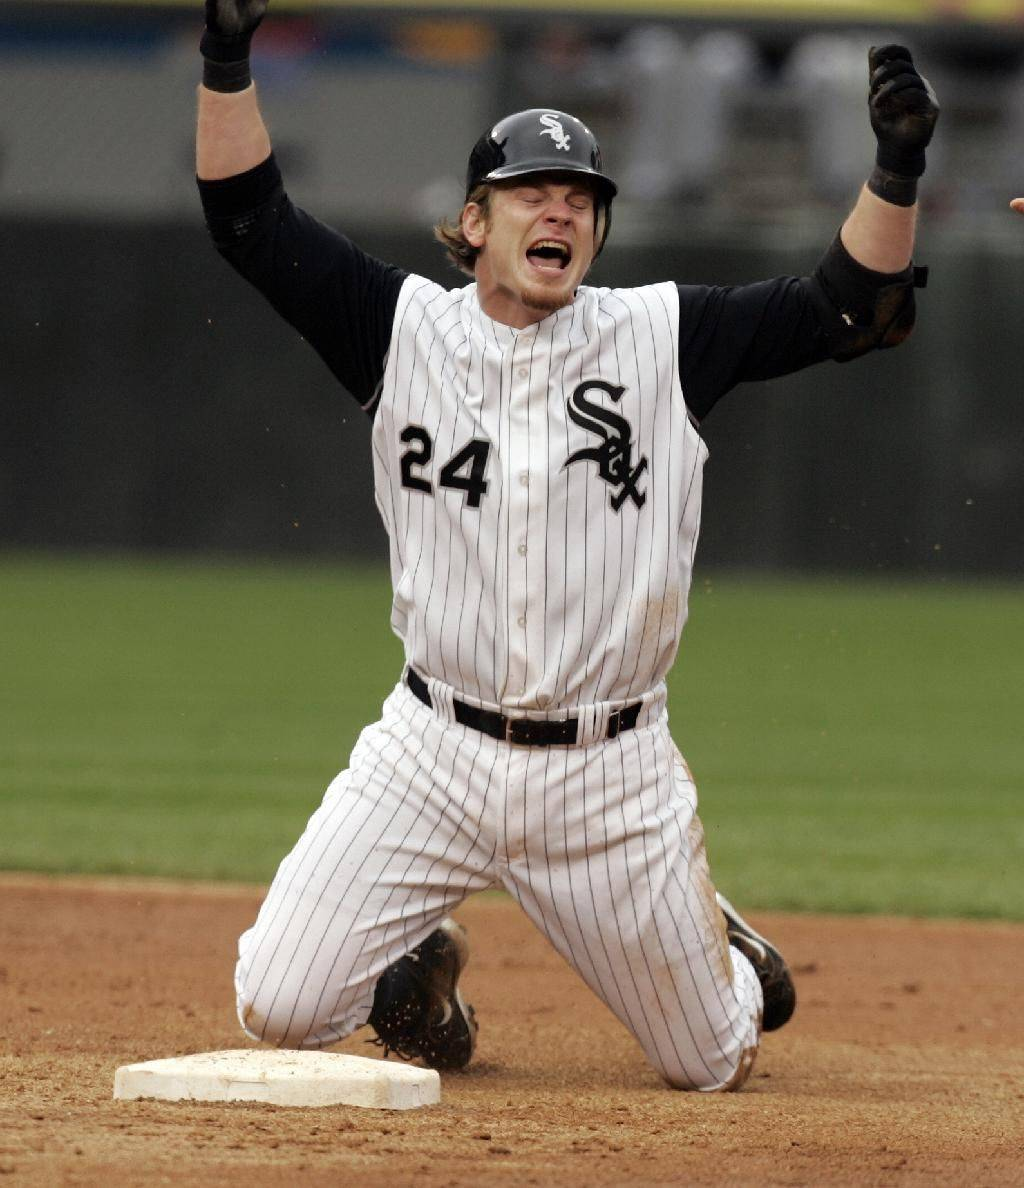 Joe Crede reacts after being called out at 2nd trying for a double in one of the White Sox-Cubs games in 2005.